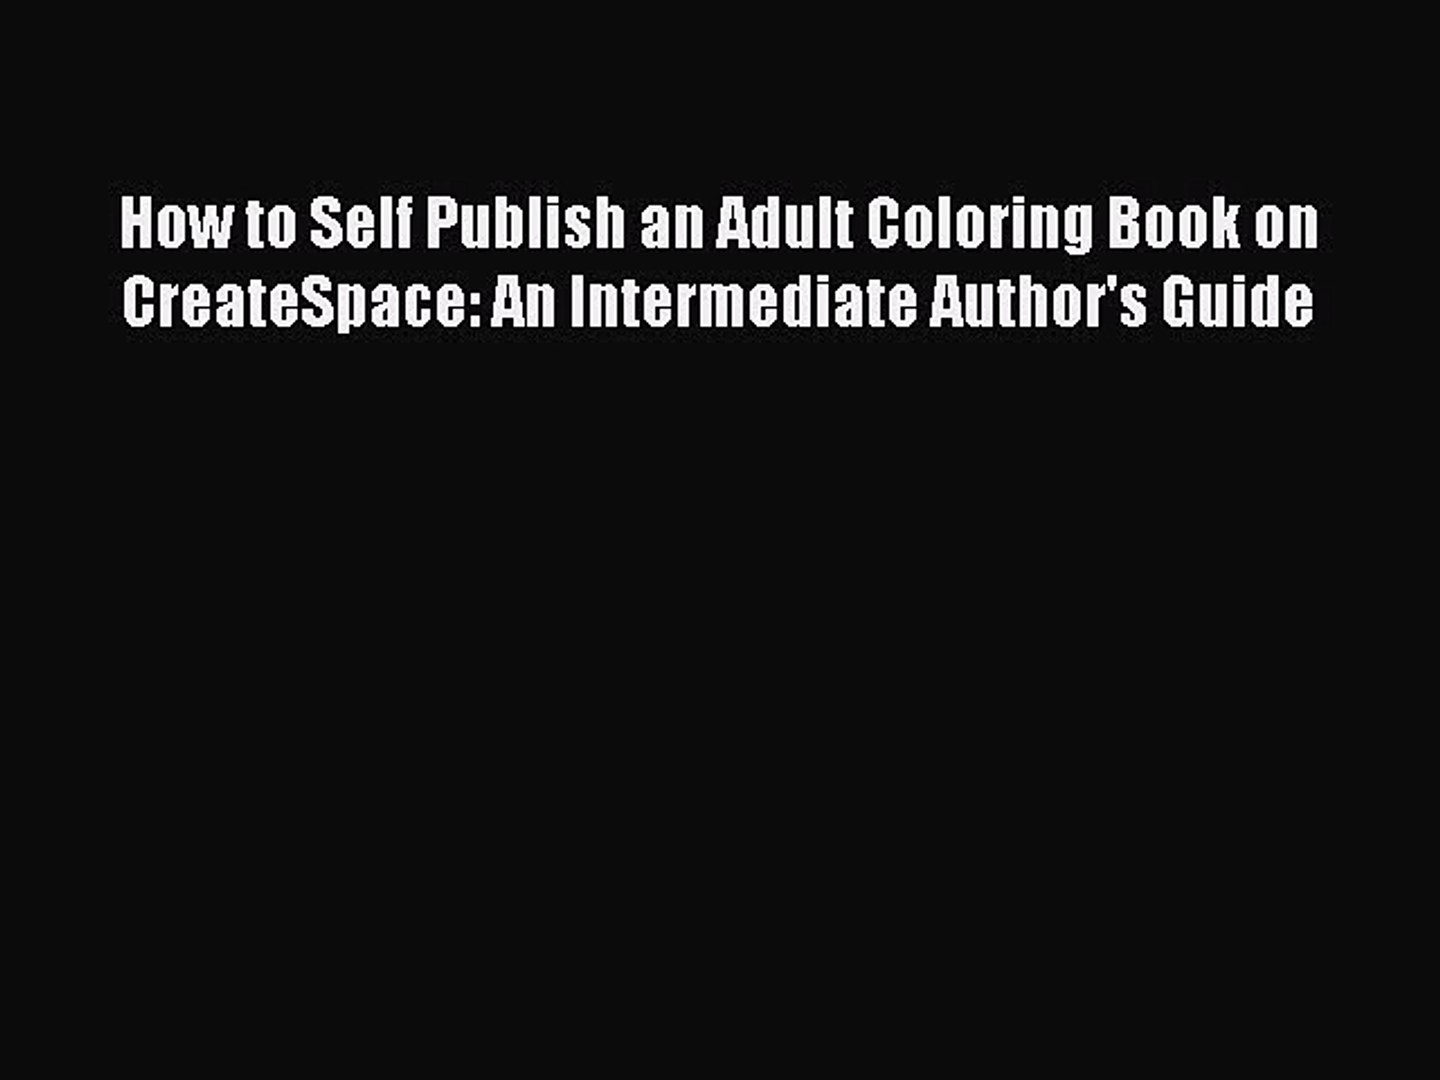 Read How to Self Publish an Adult Coloring Book on CreateSpace: An Intermediate Author's Guide